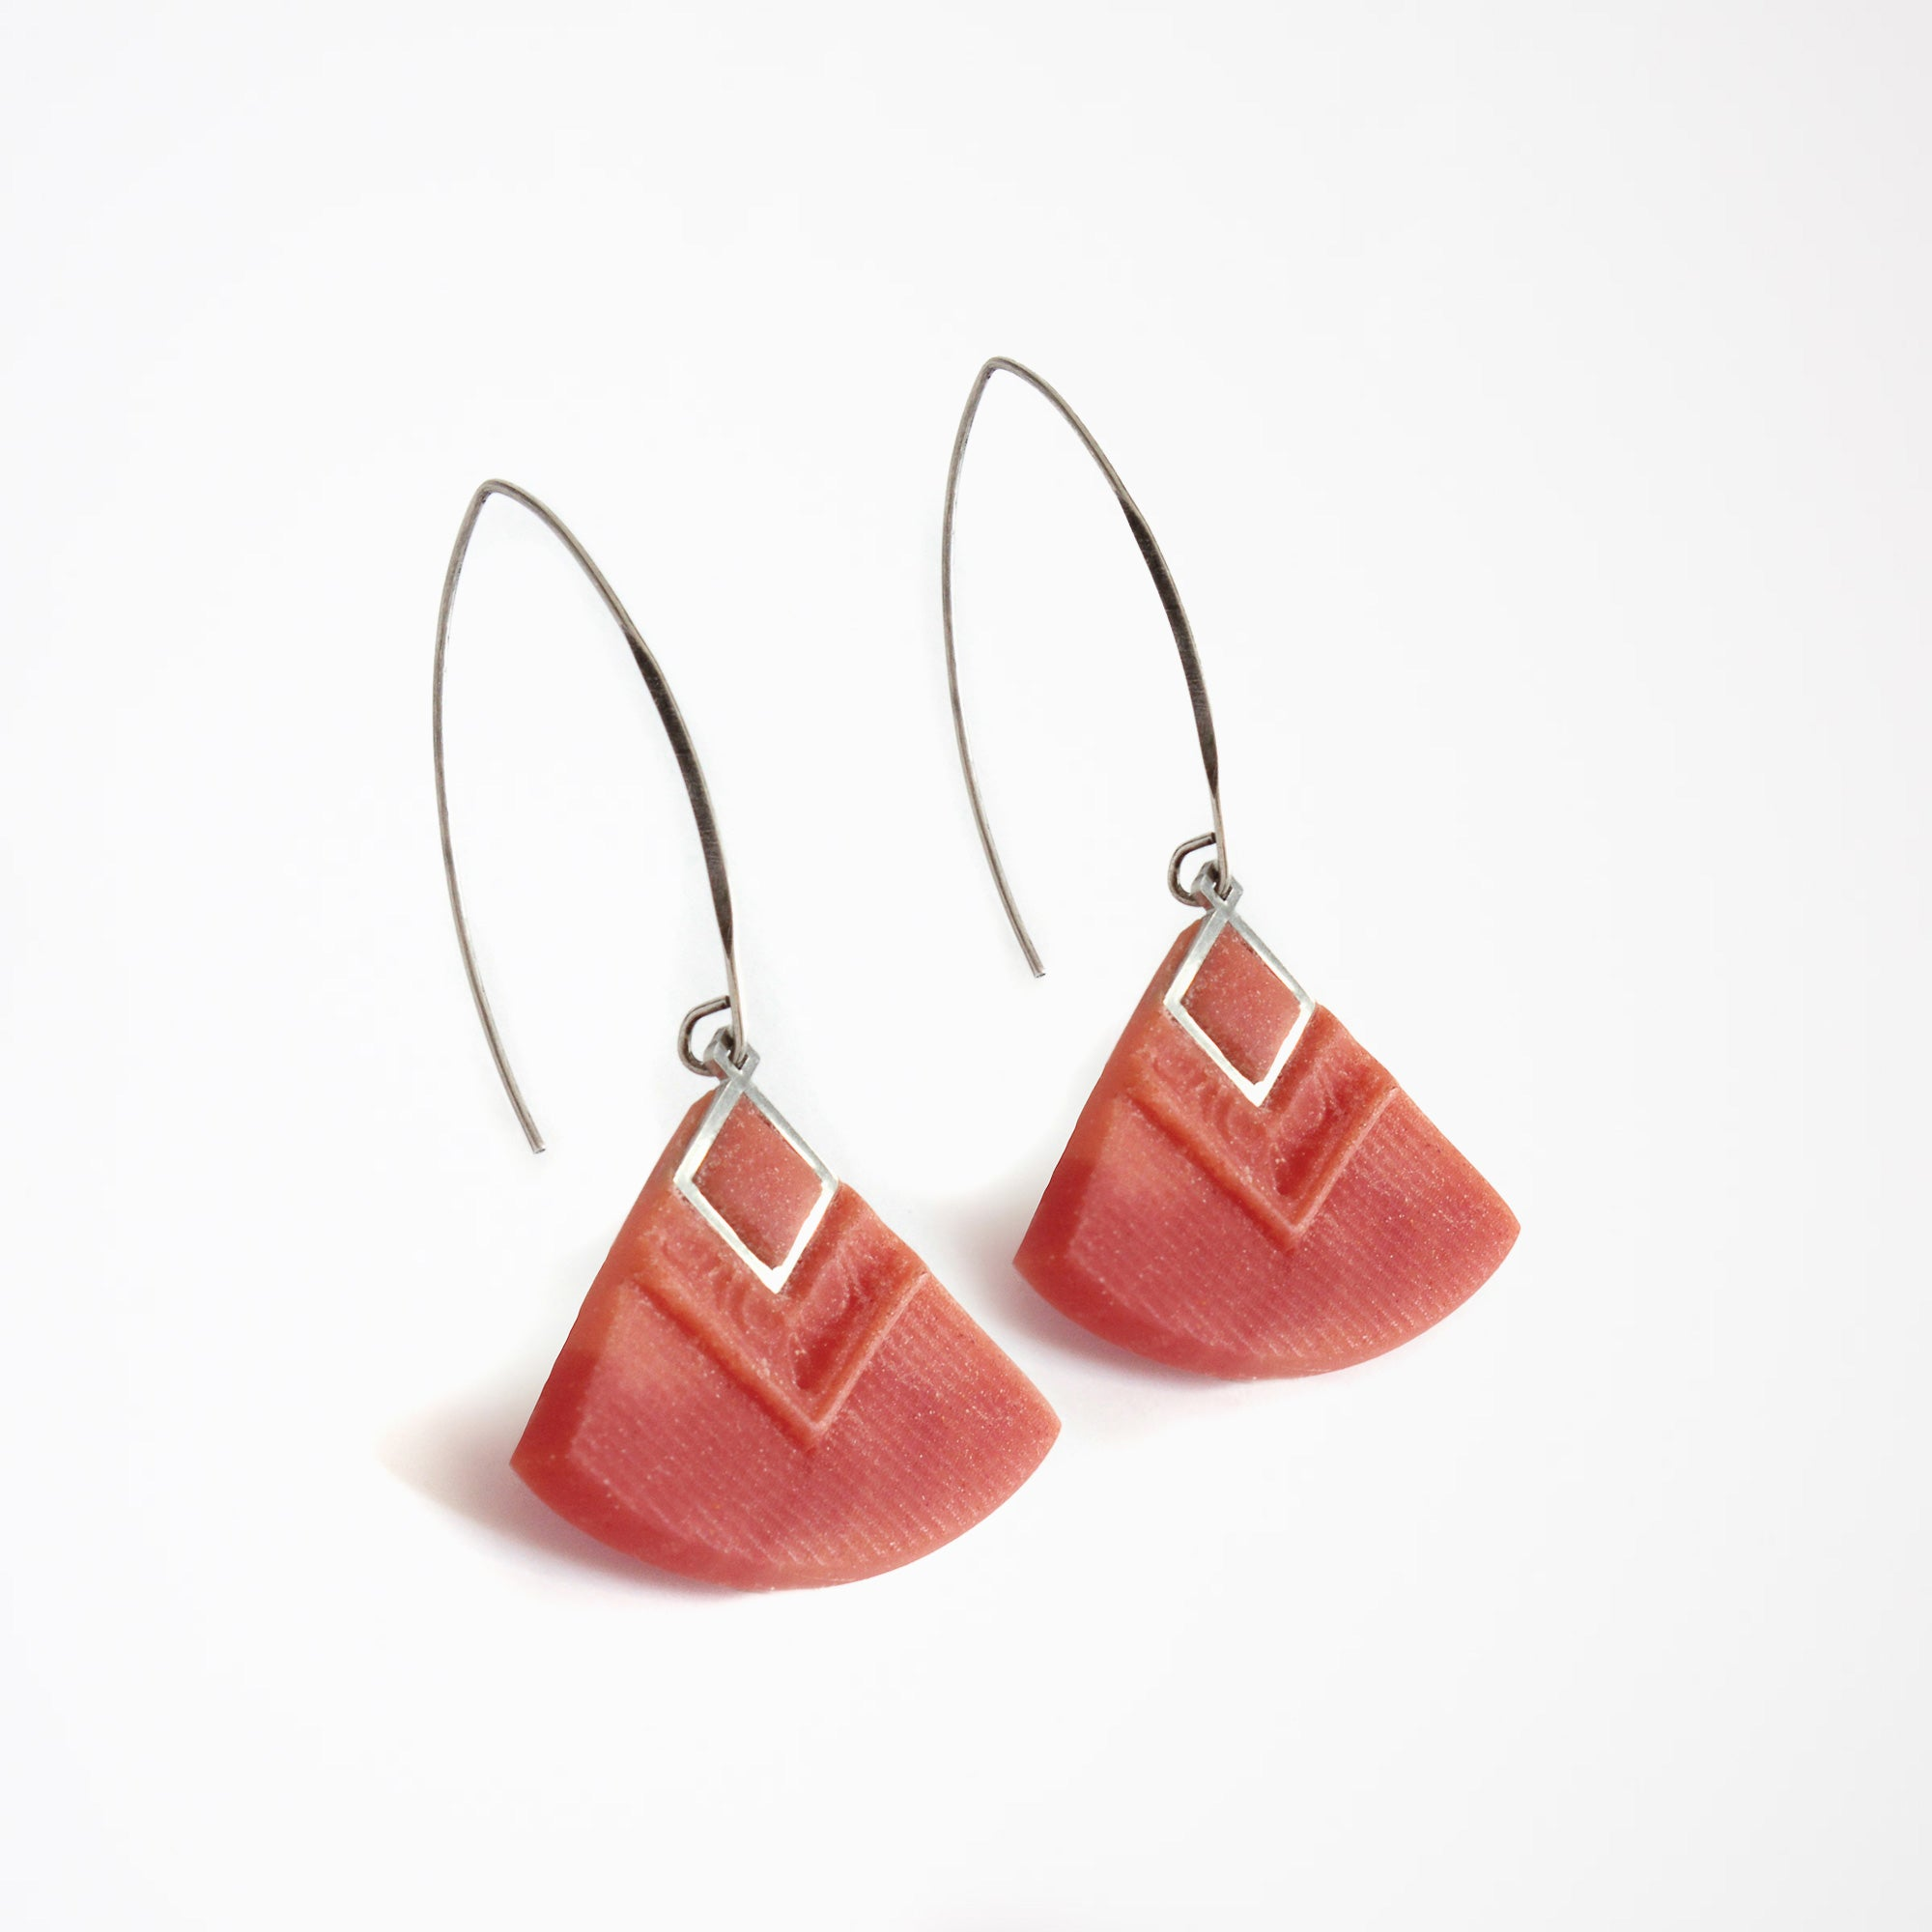 Woman Wearing a Cléopâtre Earrings in Coral - Handmade in Eco-friendly Resin - Sold by Chic & Basta